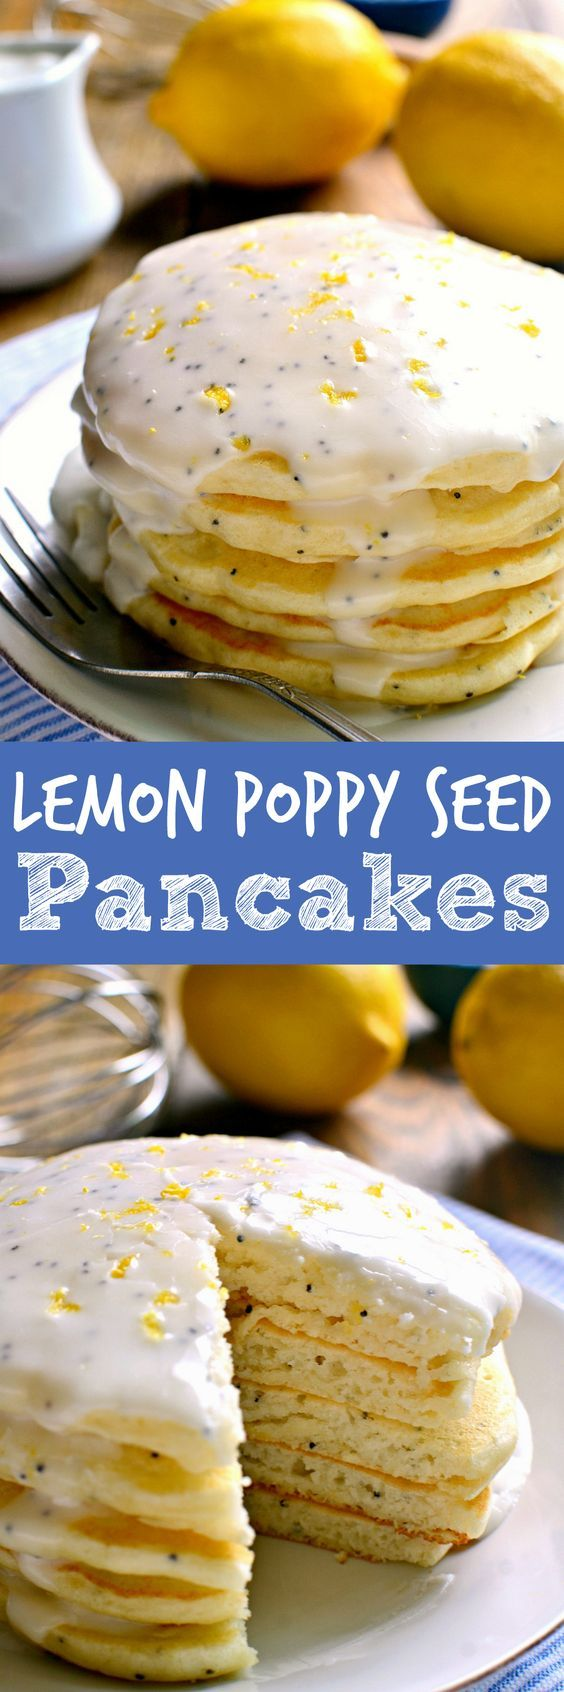 These Lemon Poppy Seed Pancakes are light, fluffy, and bursting with lemon flavor! Try them with lemon poppy seed glaze for a sweet, tart, delicious start to your day.